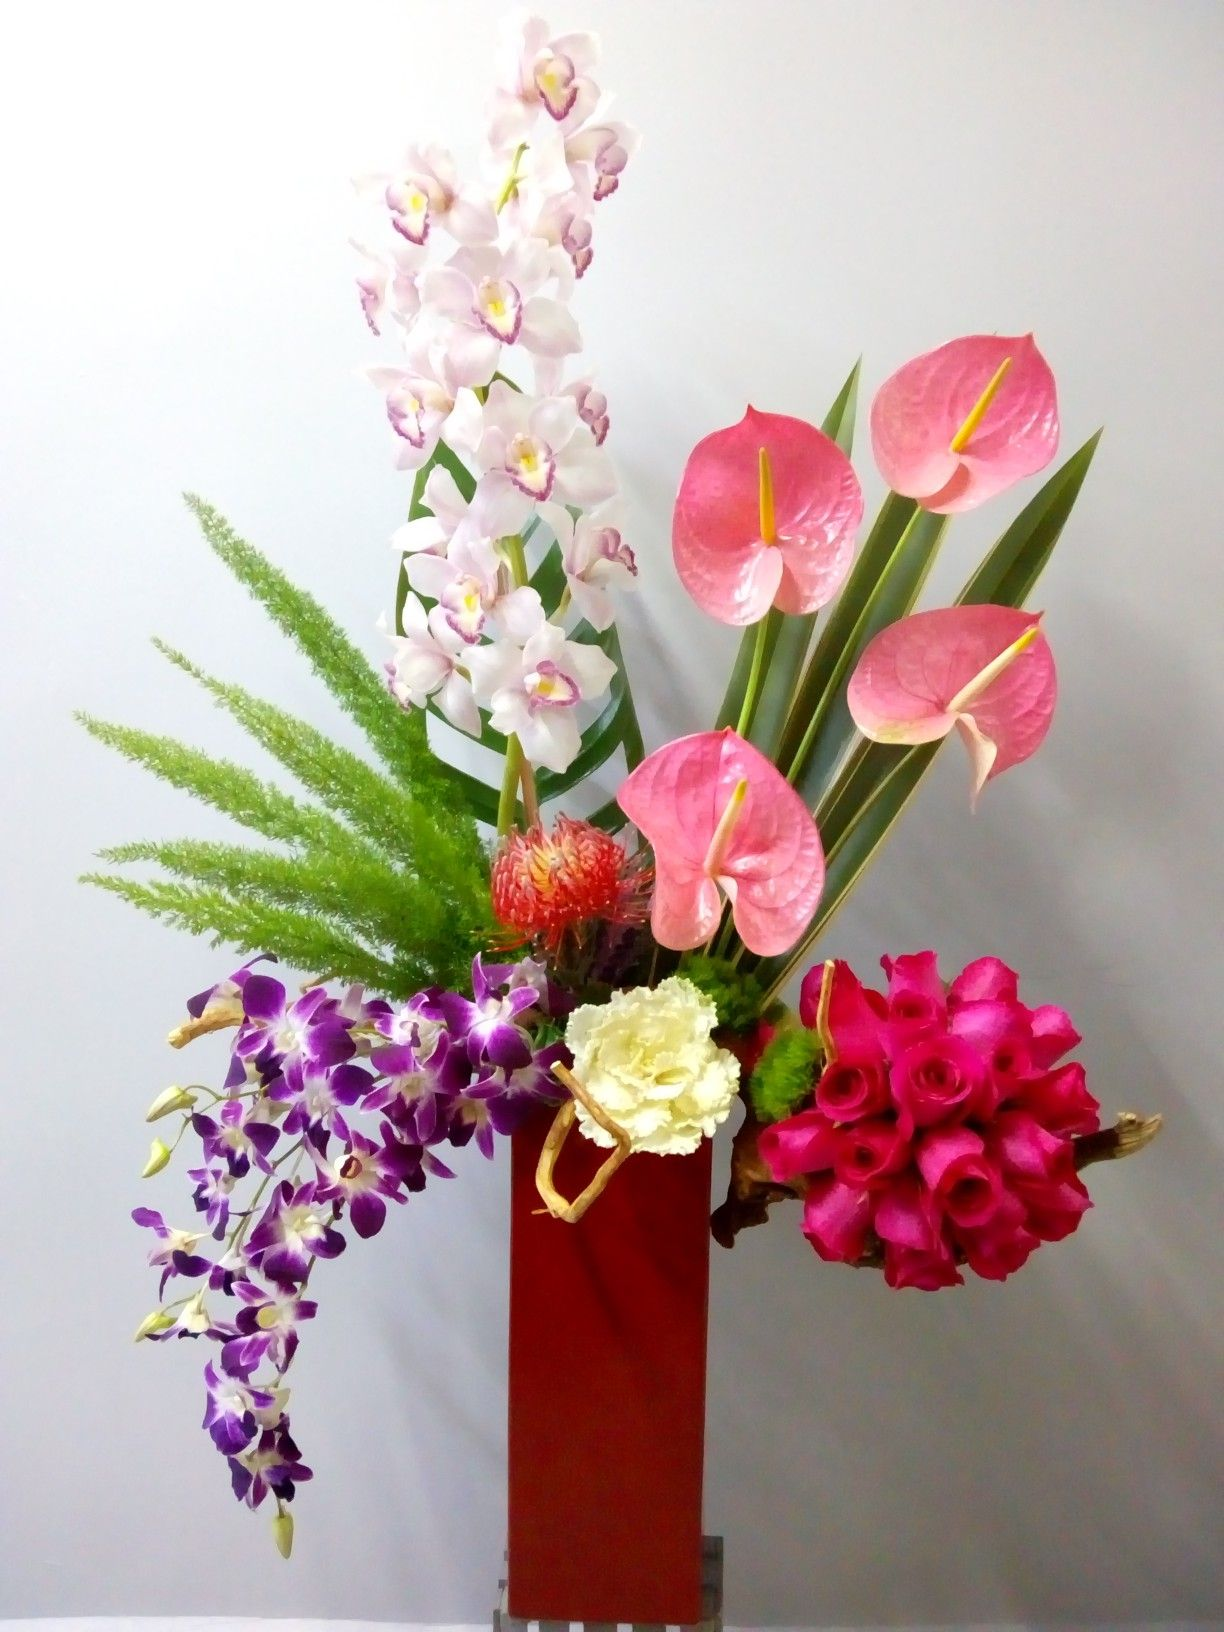 Pin By Sarah Chan On Chinese New Year Pinterest Flower